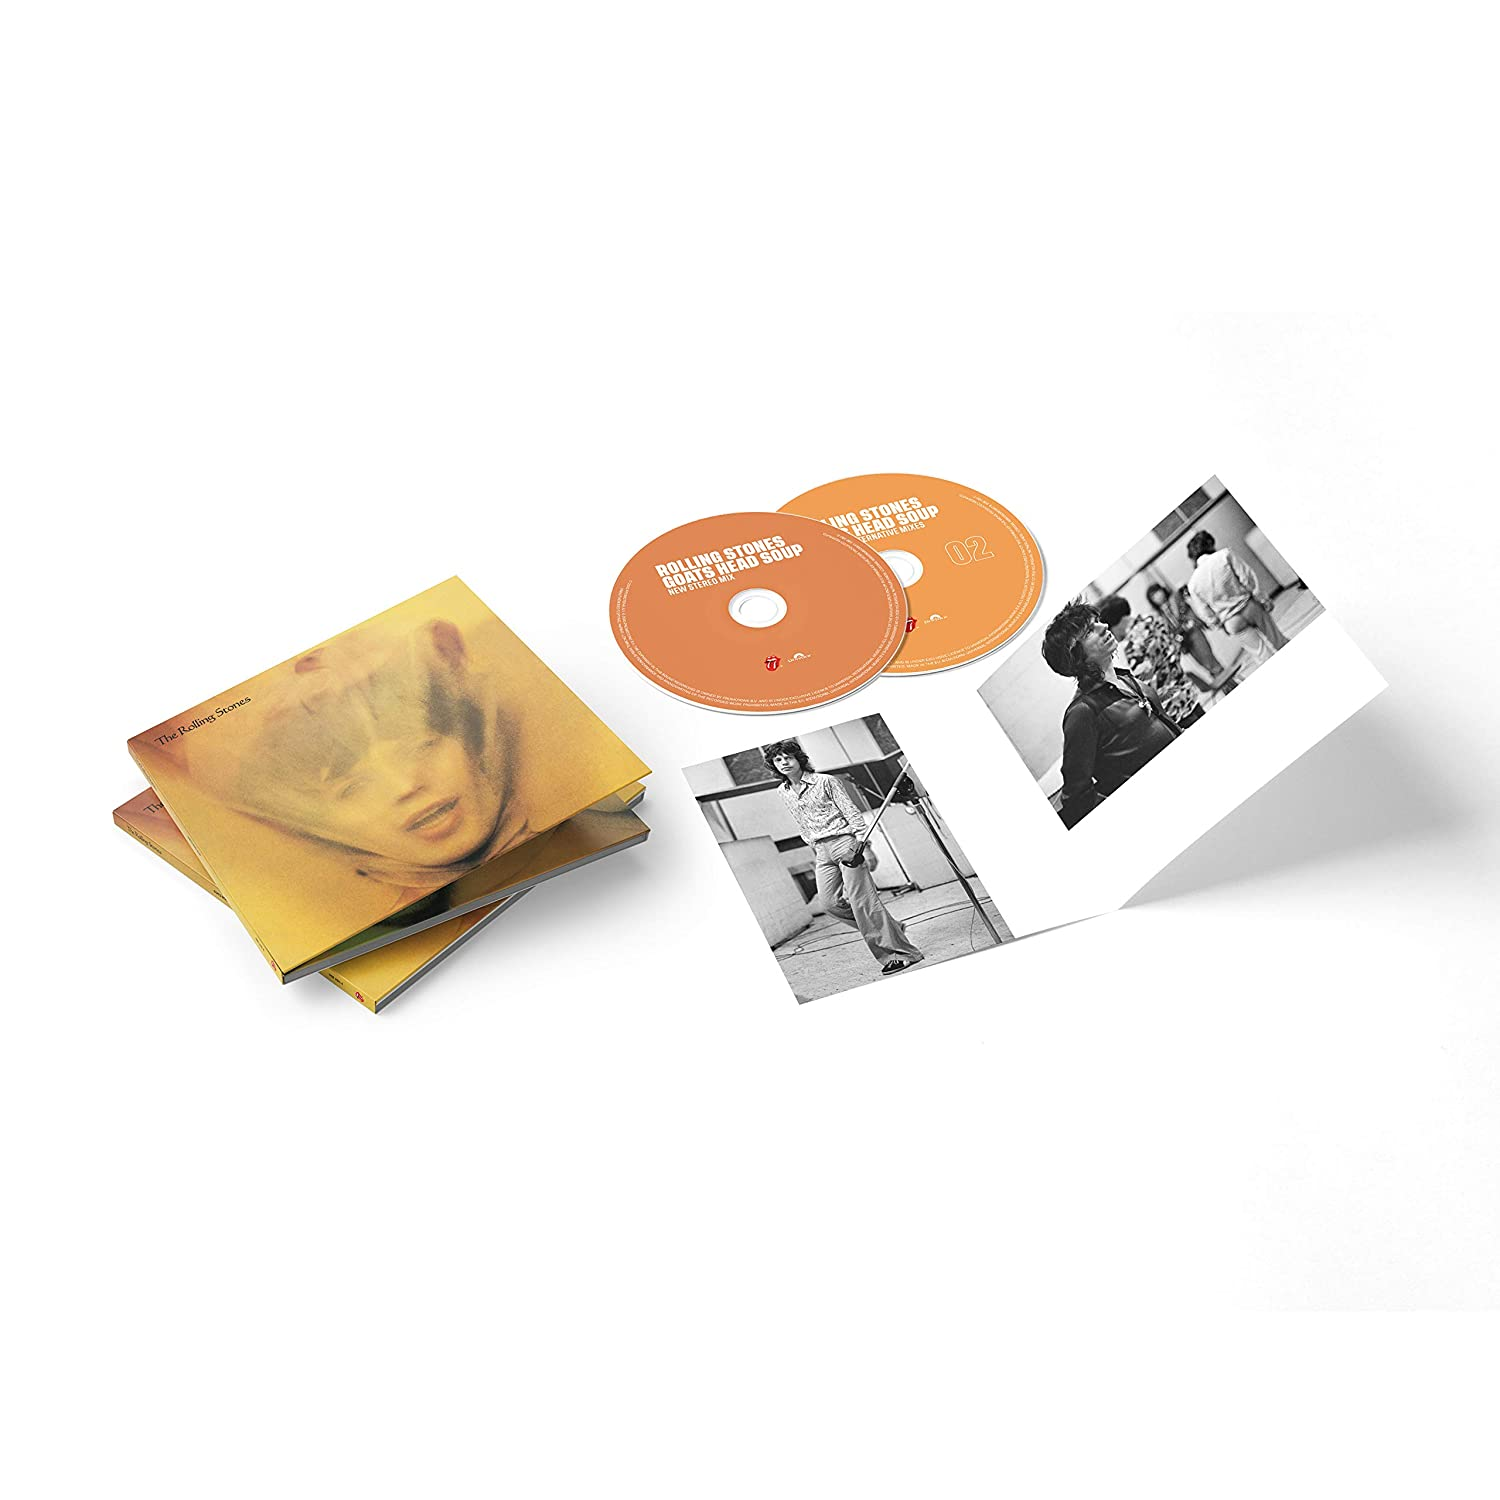 Rolling Stones, The - Goats Head Soup [2CD] (2020 Deluxe Edition, new stereo album mix, sourced from the original session files, 3 previously unreleased tracks) - Urban Vinyl | Records, Headphones, and more.